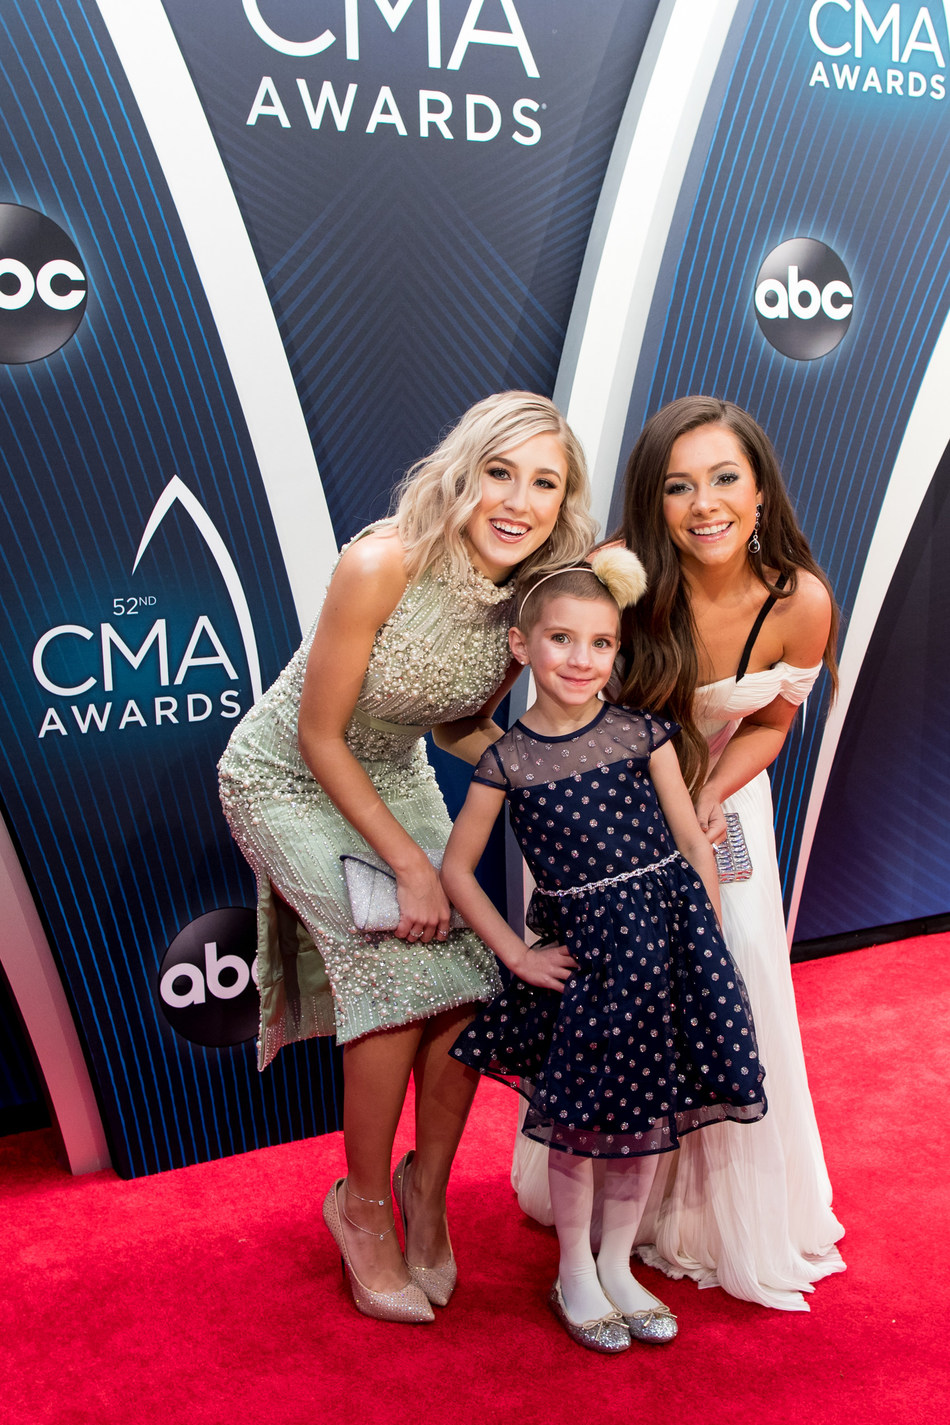 PLATINUM-selling country music artists Maddie & Tae escort 5-year-old Caroline Lantz, a cancer patient at Children's Hospital at Vanderbilt, down the official red carpet during the 52nd annual CMA Awards on Nov. 14, 2018, in Nashville, Tennessee, thanks to Aflac – a committed corporate ally in helping defeat childhood cancer. Photo Credit: Sara Kauss Photography